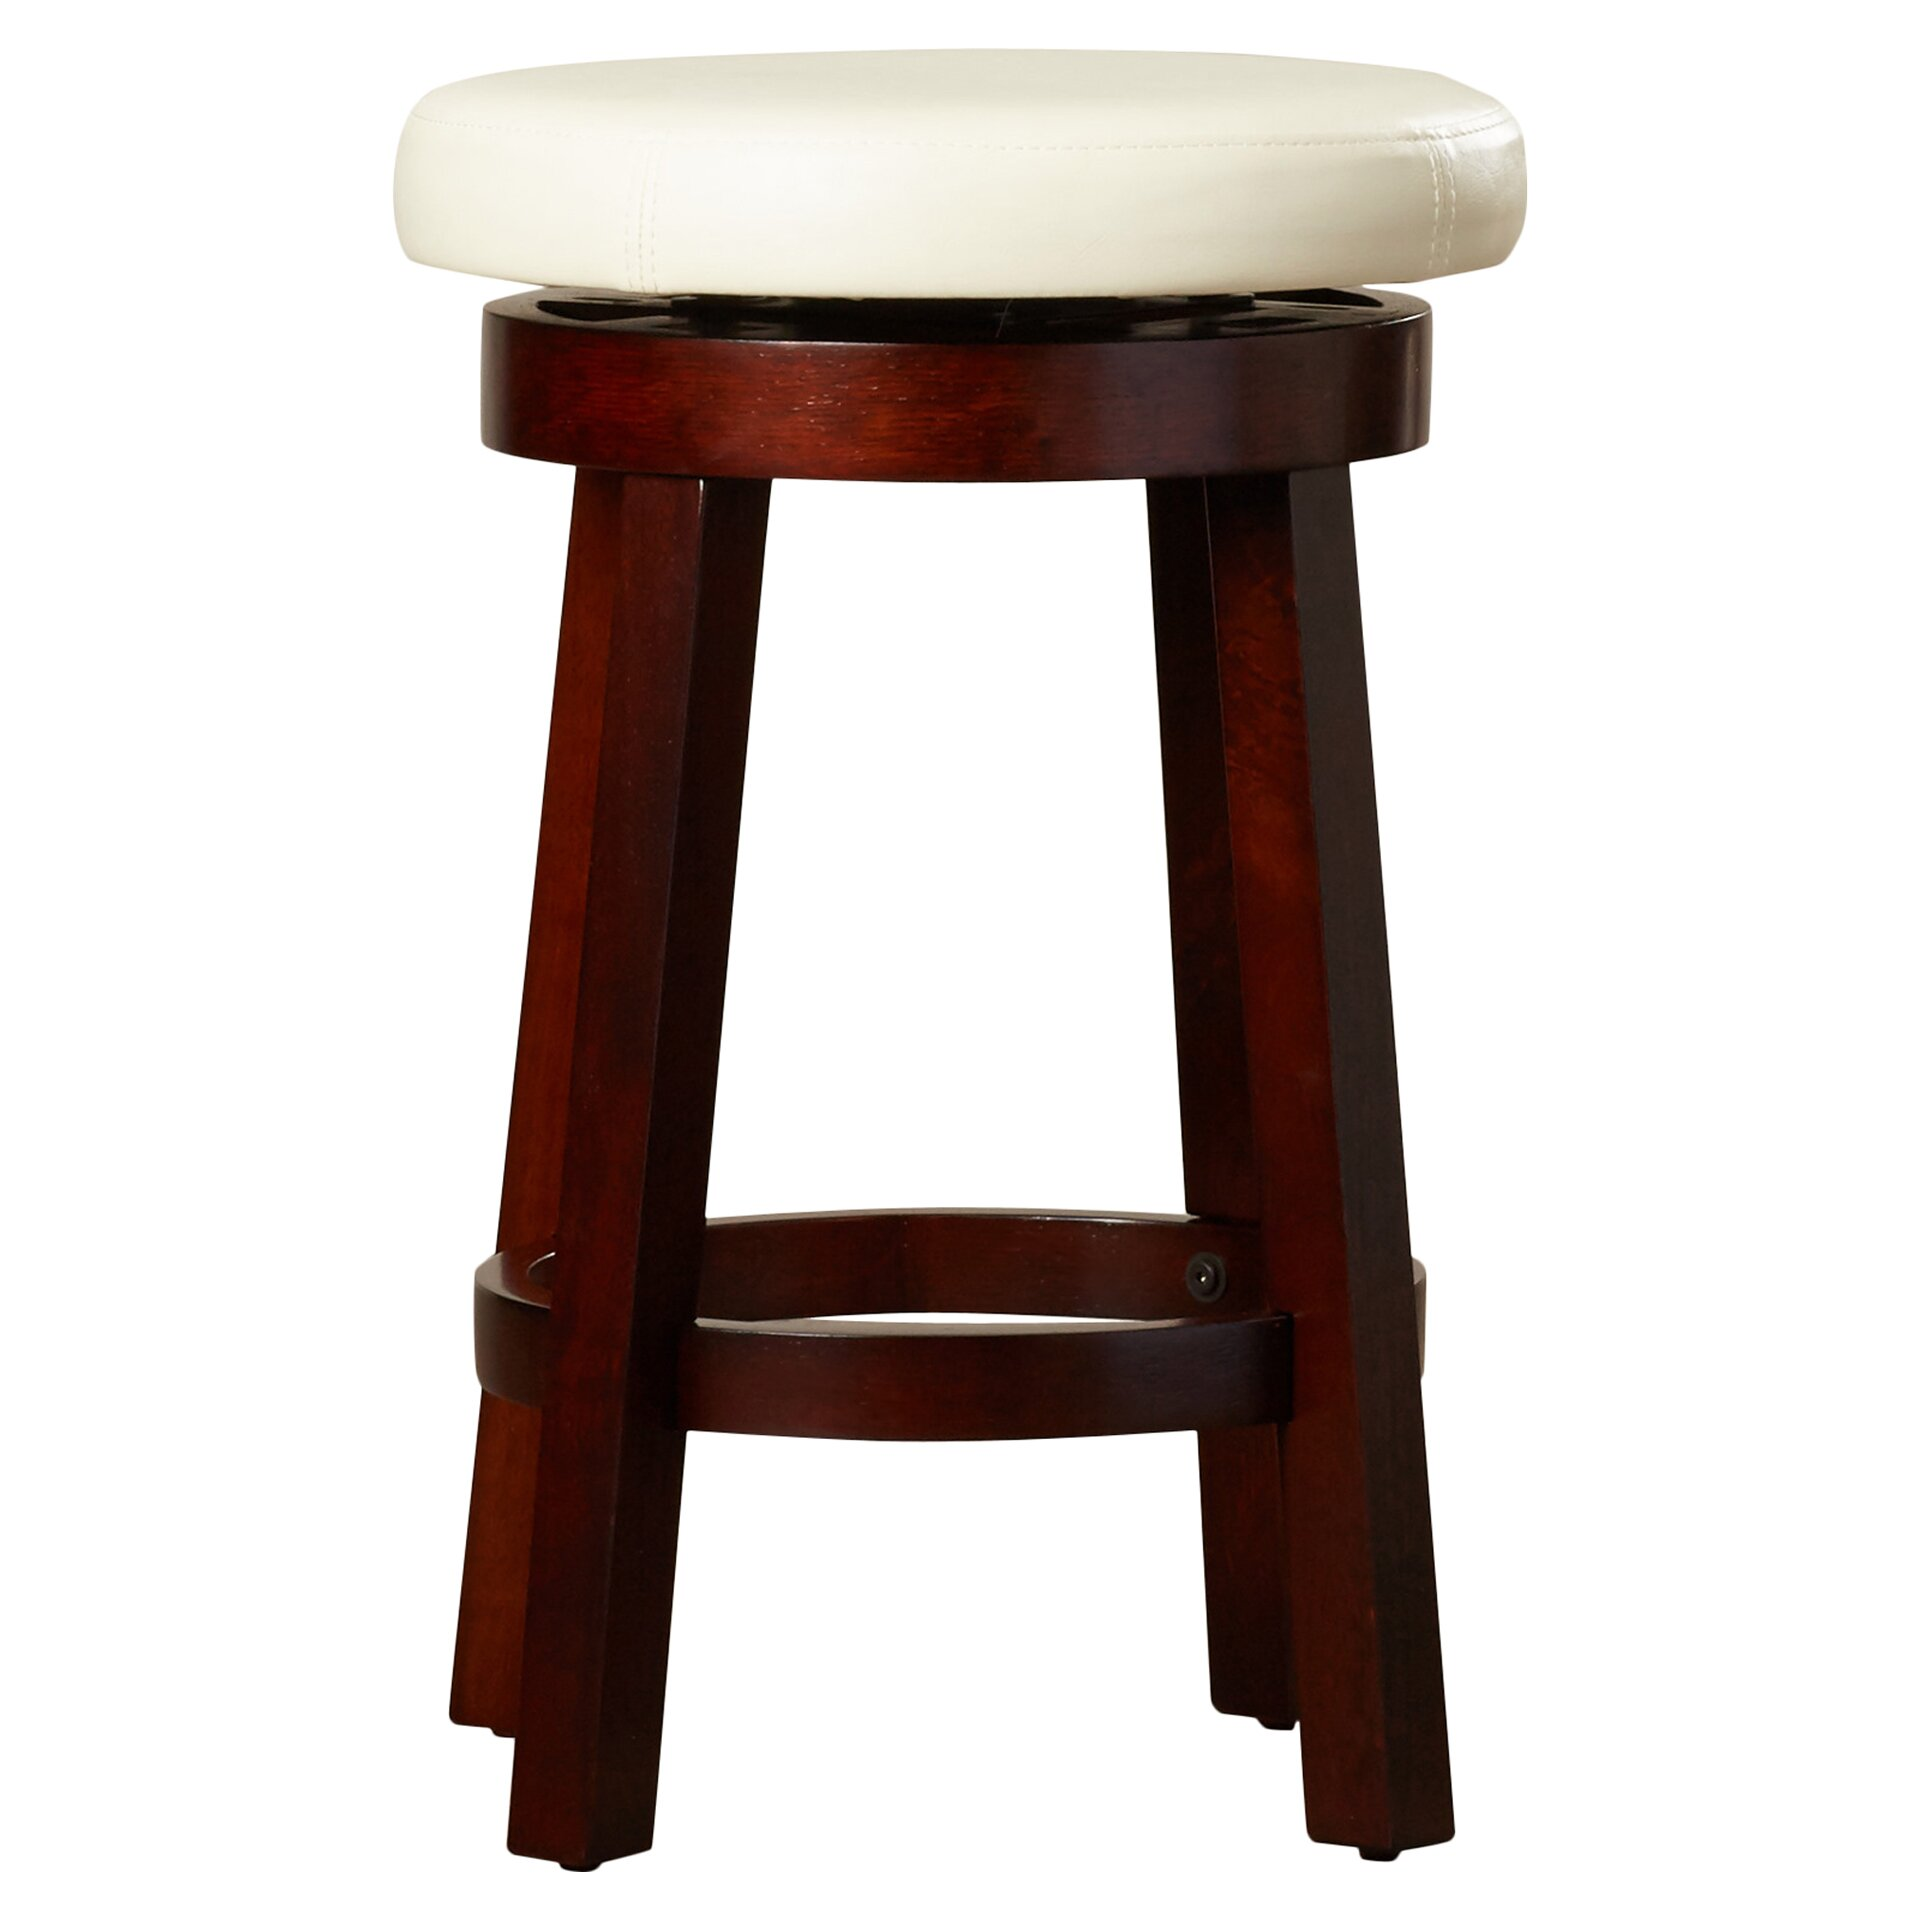 OSP Designs Metro 24quot Bar Stool with Cushion amp Reviews  : Antley2B2425222BBar2BStool2Bwith2BCushion from www.wayfair.ca size 1920 x 1920 jpeg 209kB